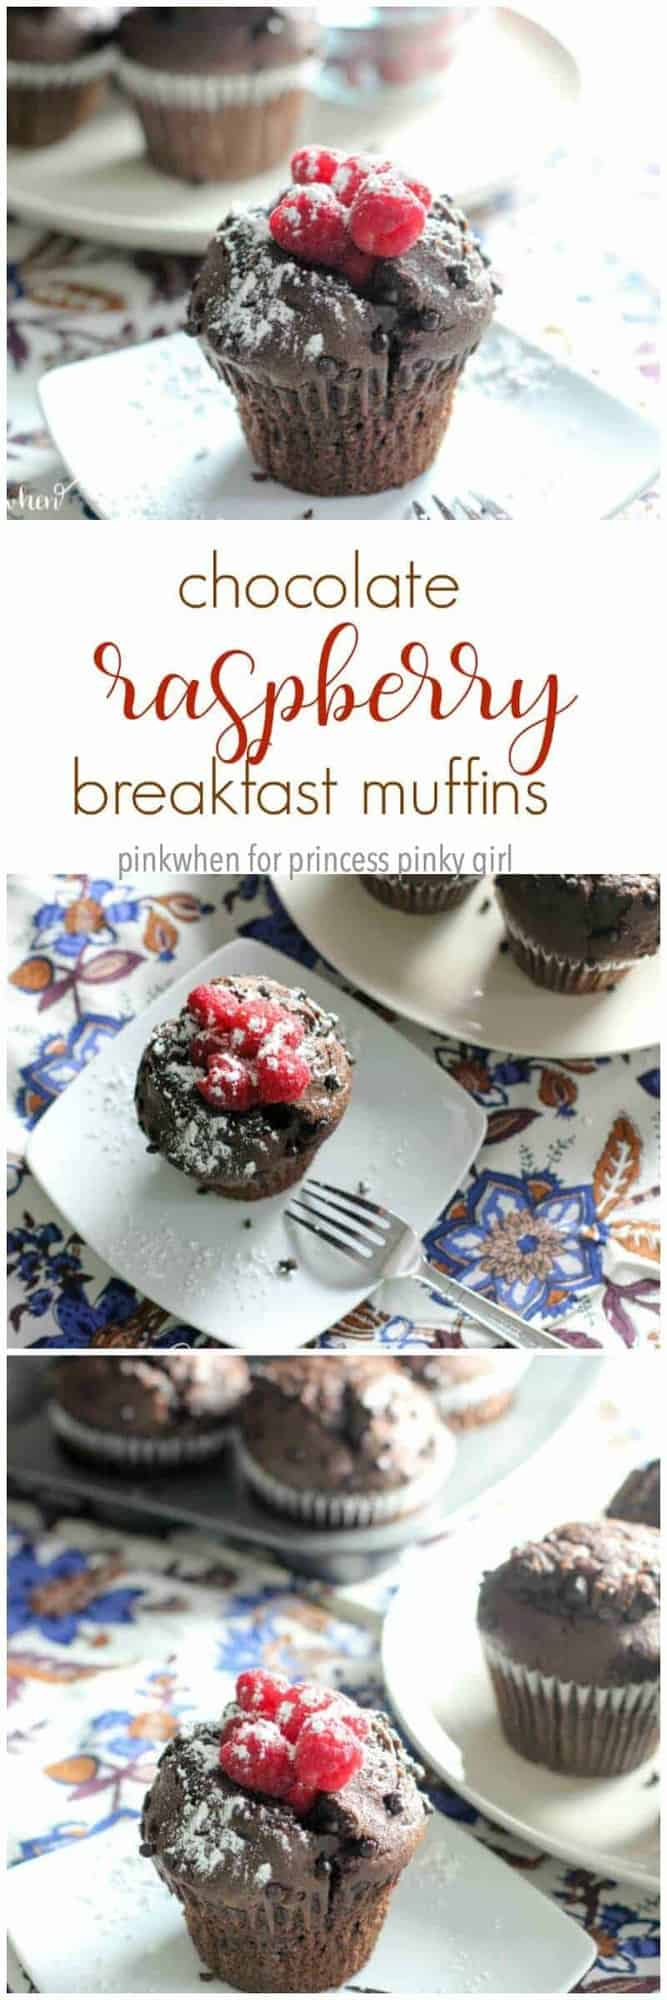 What's not to love about a chocolate muffin for breakfast? These chocolate raspberry breakfast muffins are one of my favorite weekend cheats. They are super moist, loaded with chocolate chips, and topped with raspberries and a sprinkle or two of powdered sugar.